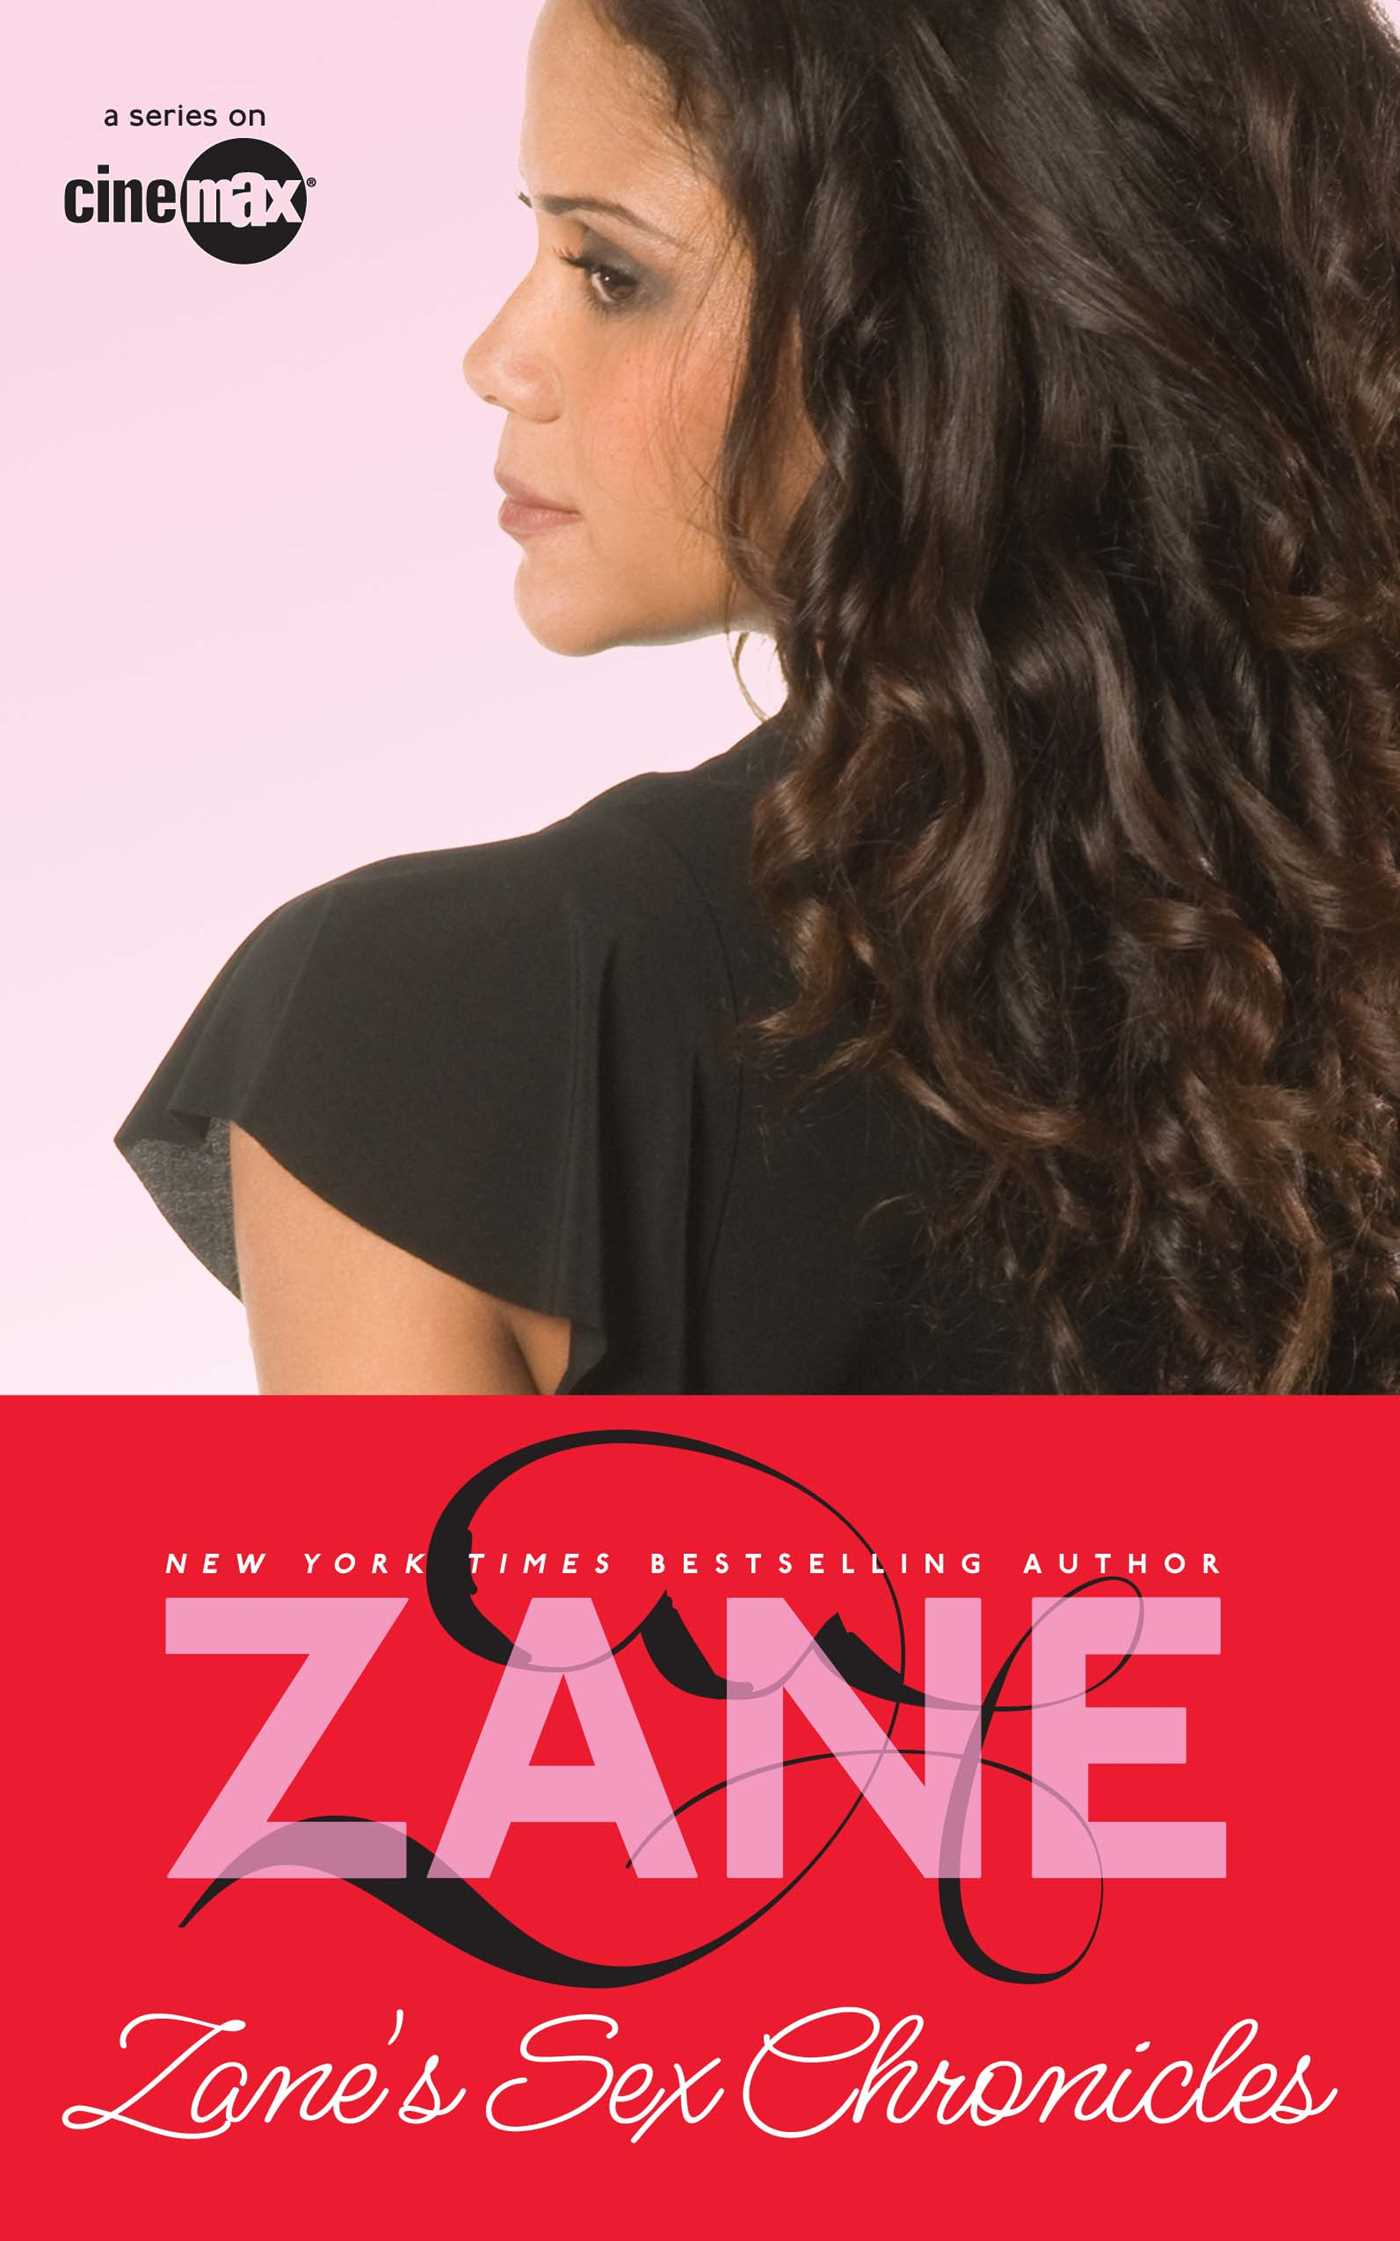 Zanes-sex-chronicles-9781416584117_hr